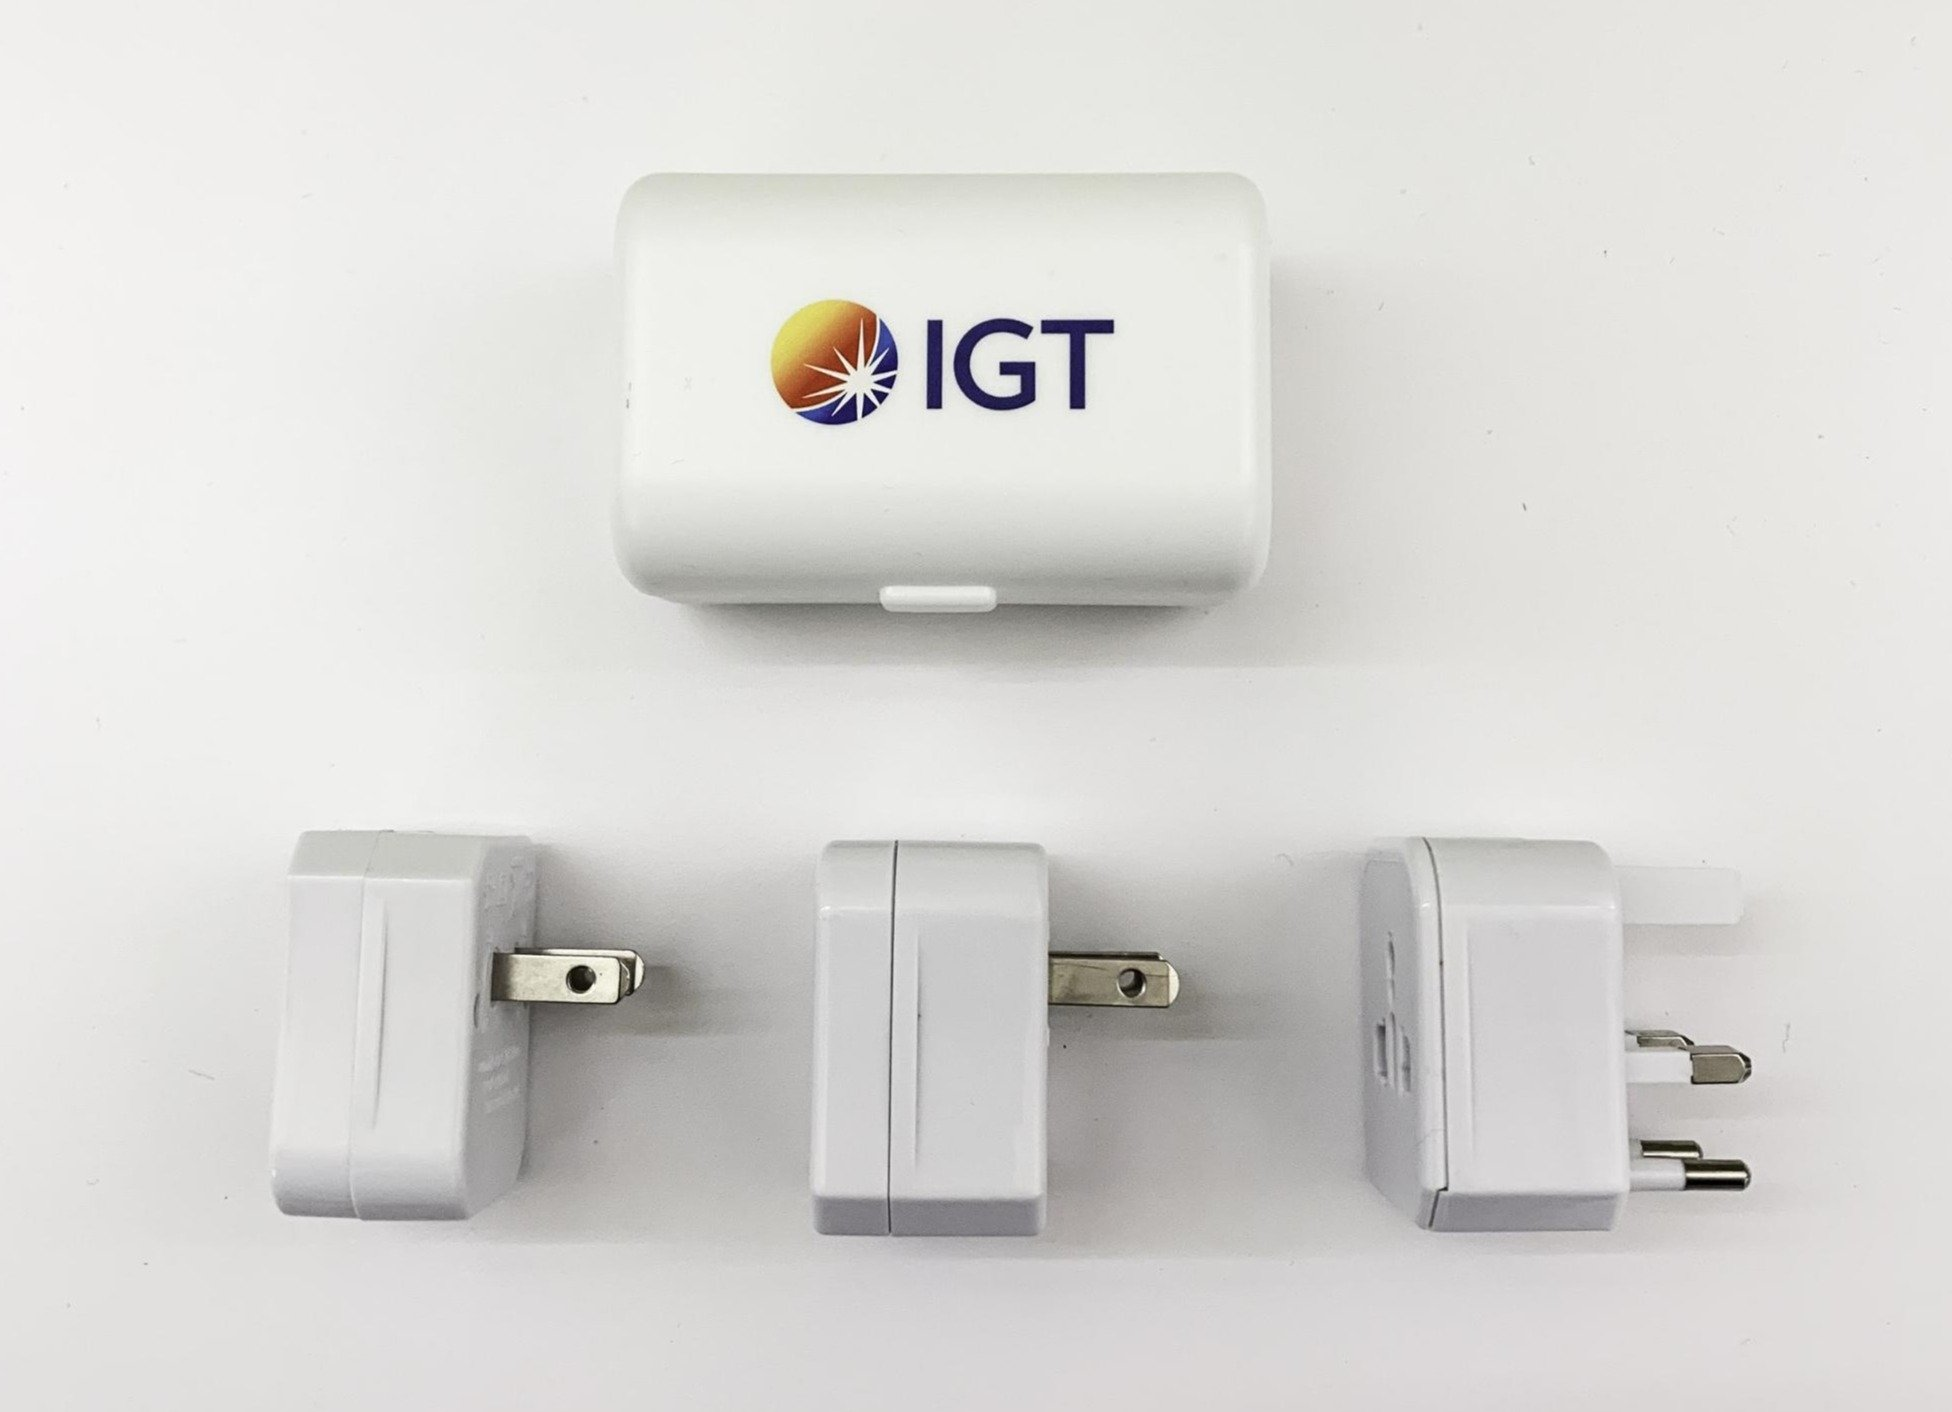 Branded travel adapters